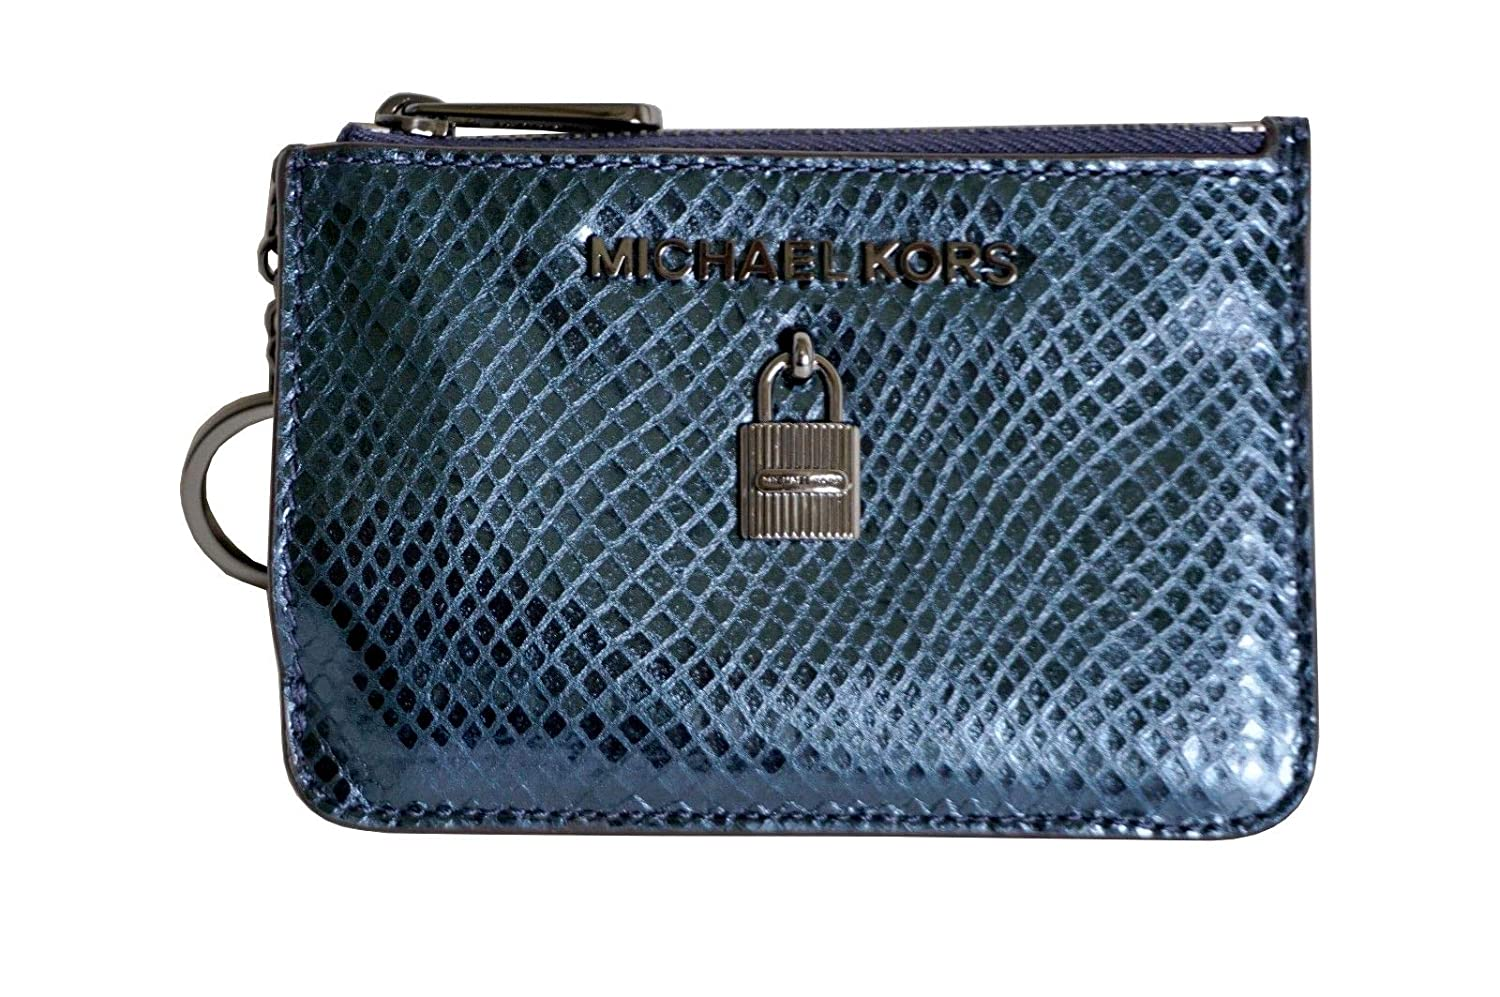 bfeee4dc9b0a Michael Kors Adele Small Top Zip Coin Pouch ID Card Case Wallet (Deep Teal)  at Amazon Women s Clothing store